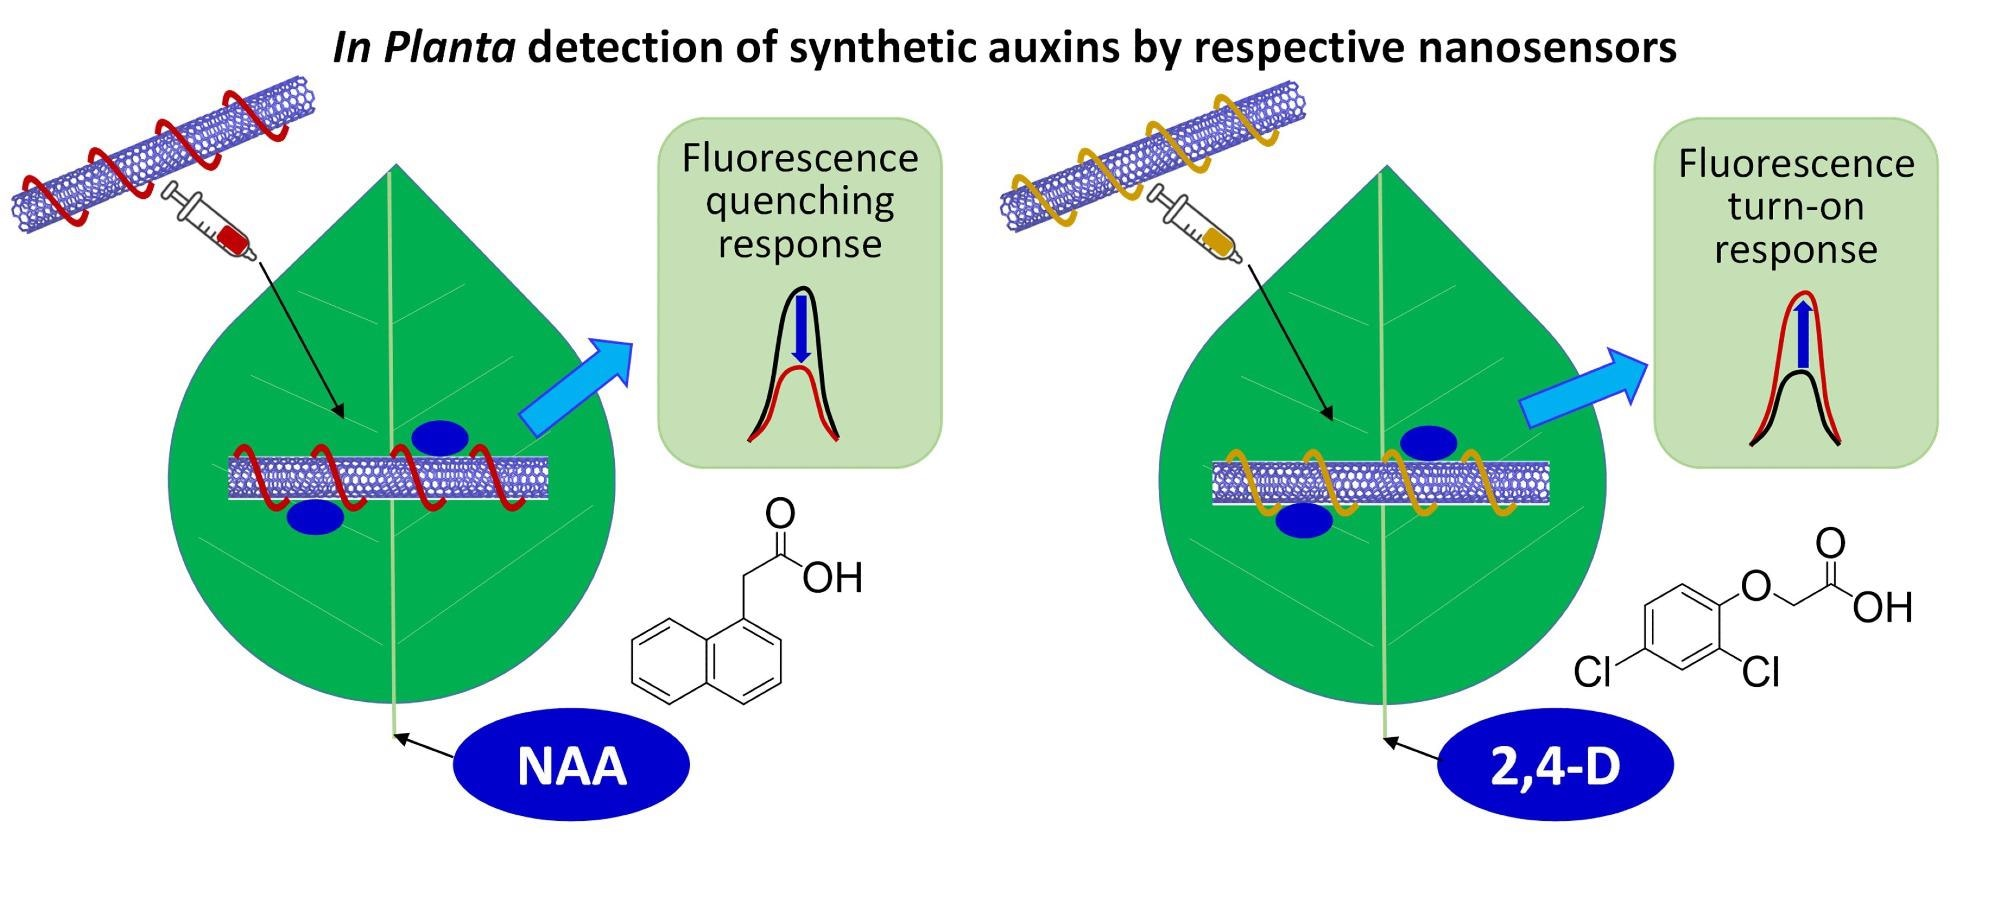 Illustration of novel in planta CoPhMoRe nano sensors for detection of synthetic auxin plant hormones